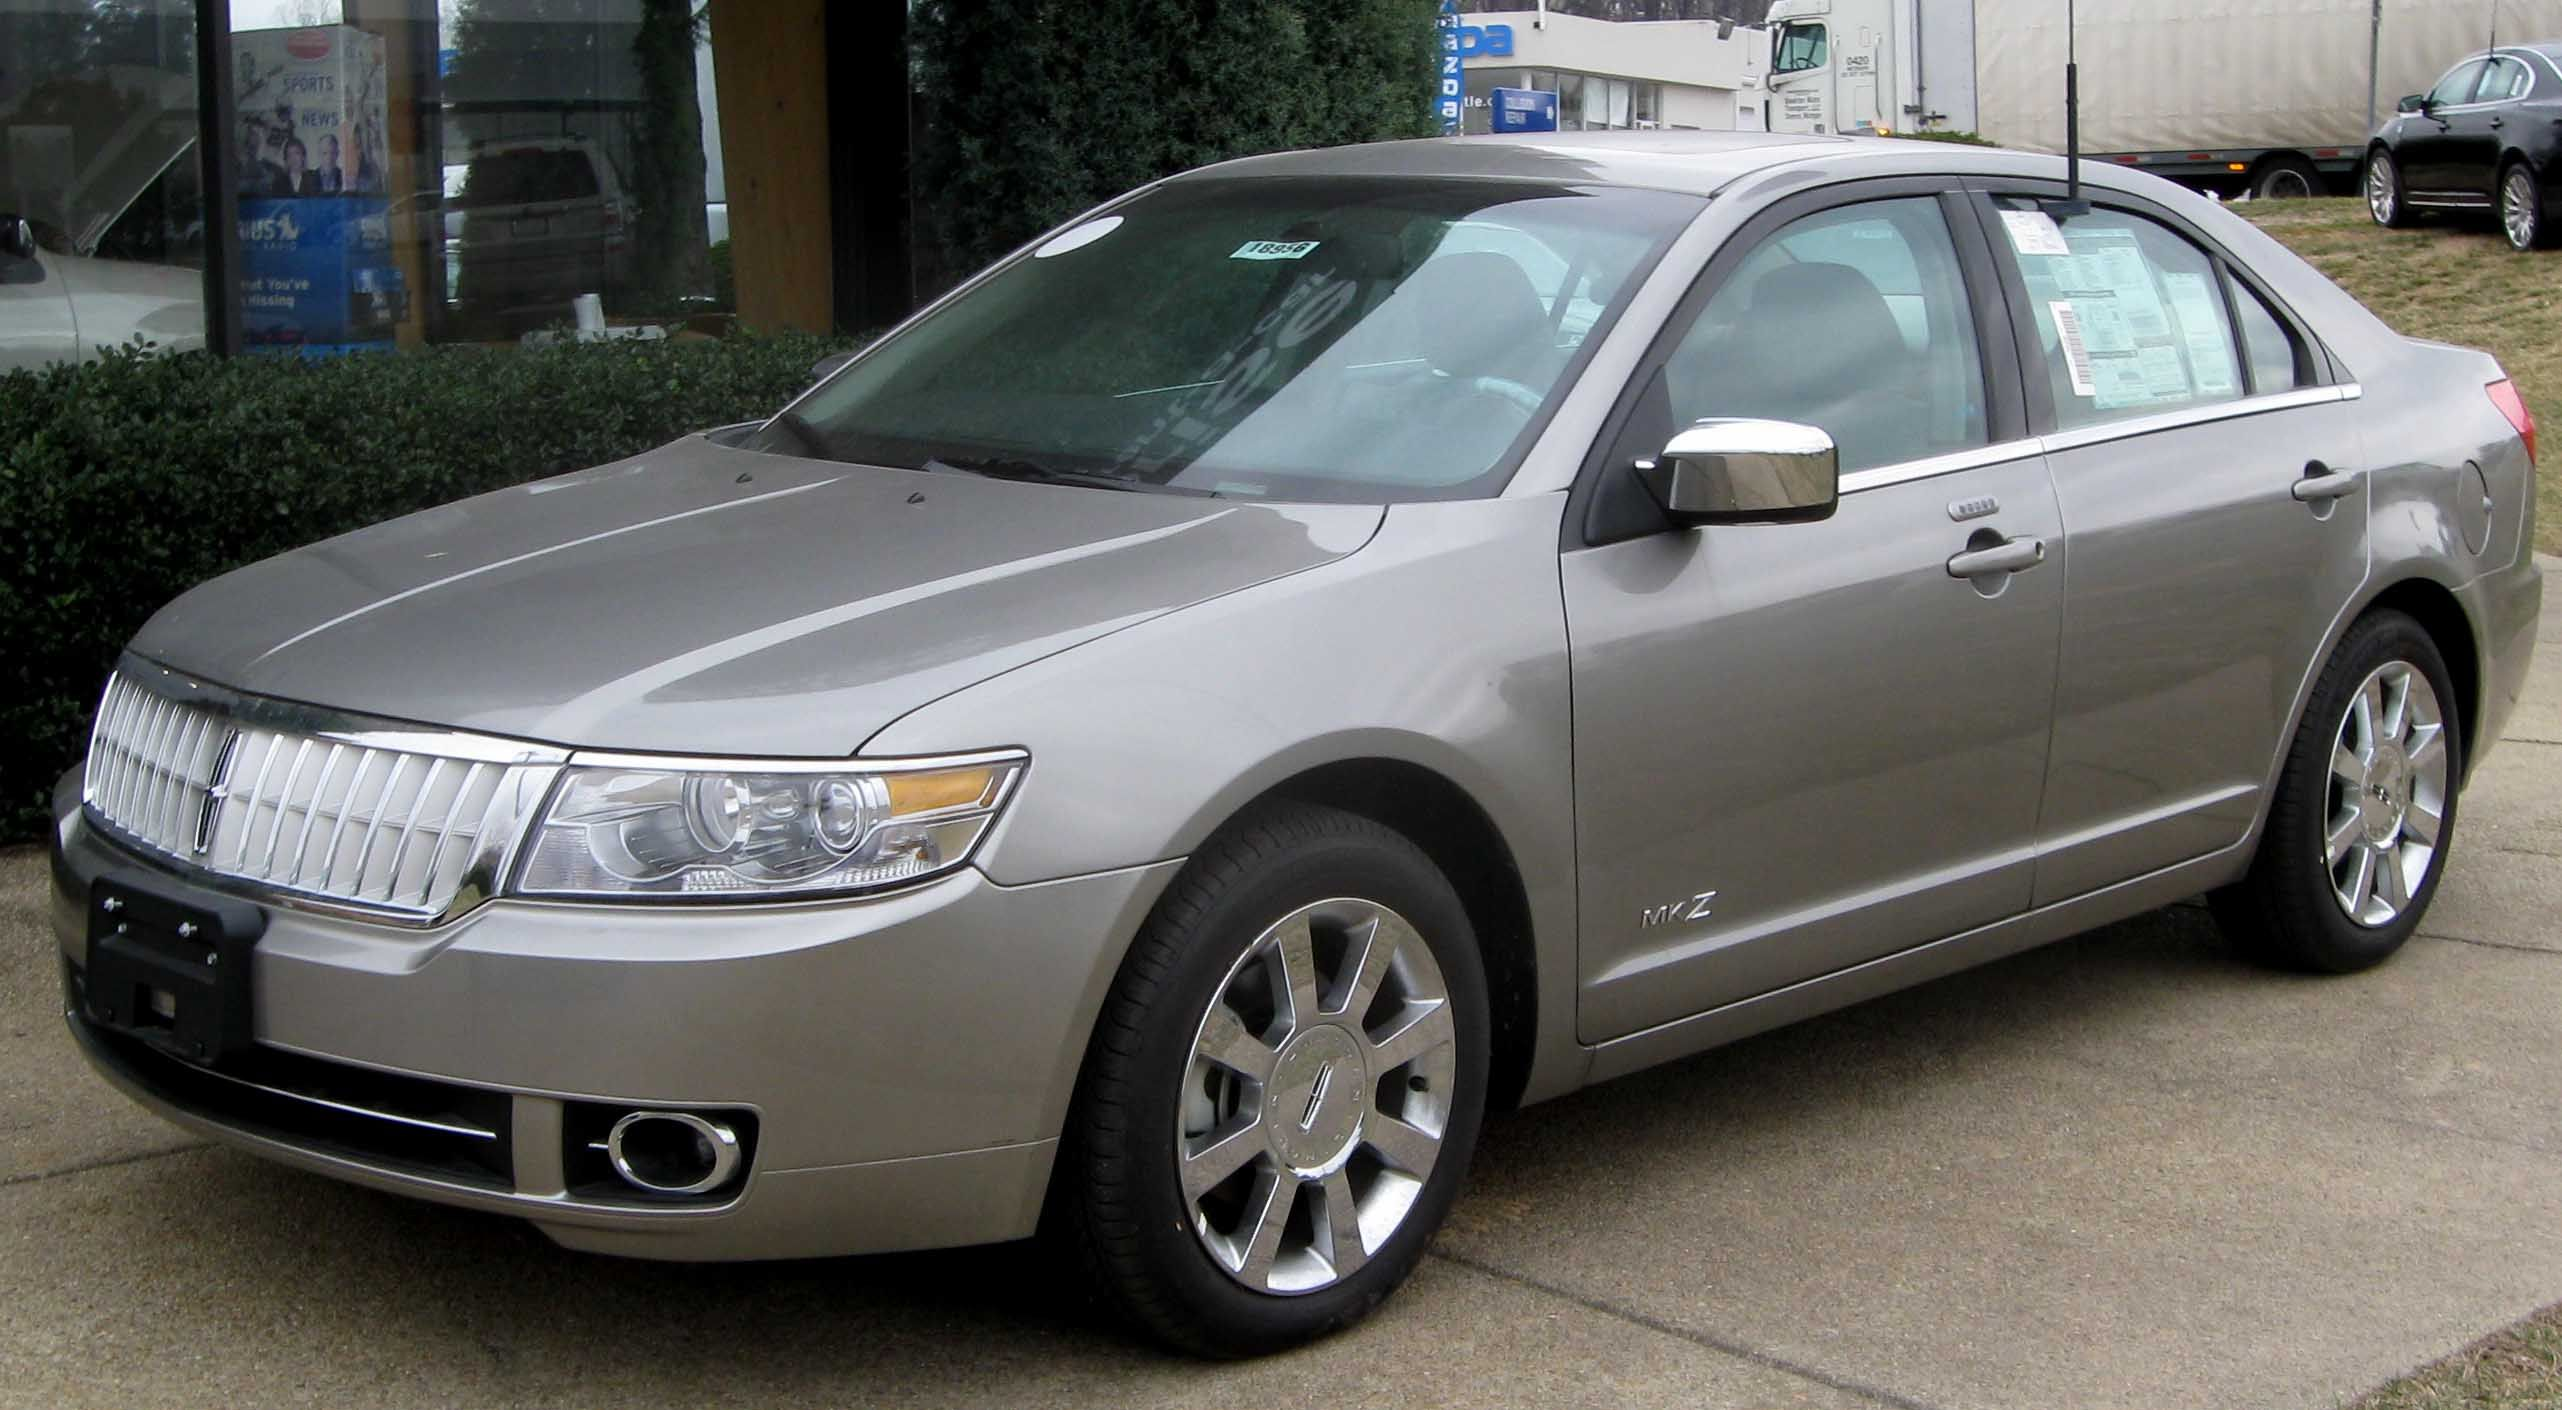 2014 lincoln mkz 3 7 awd shows very handsome kamm tail lincoln motor company motor company and dream cars